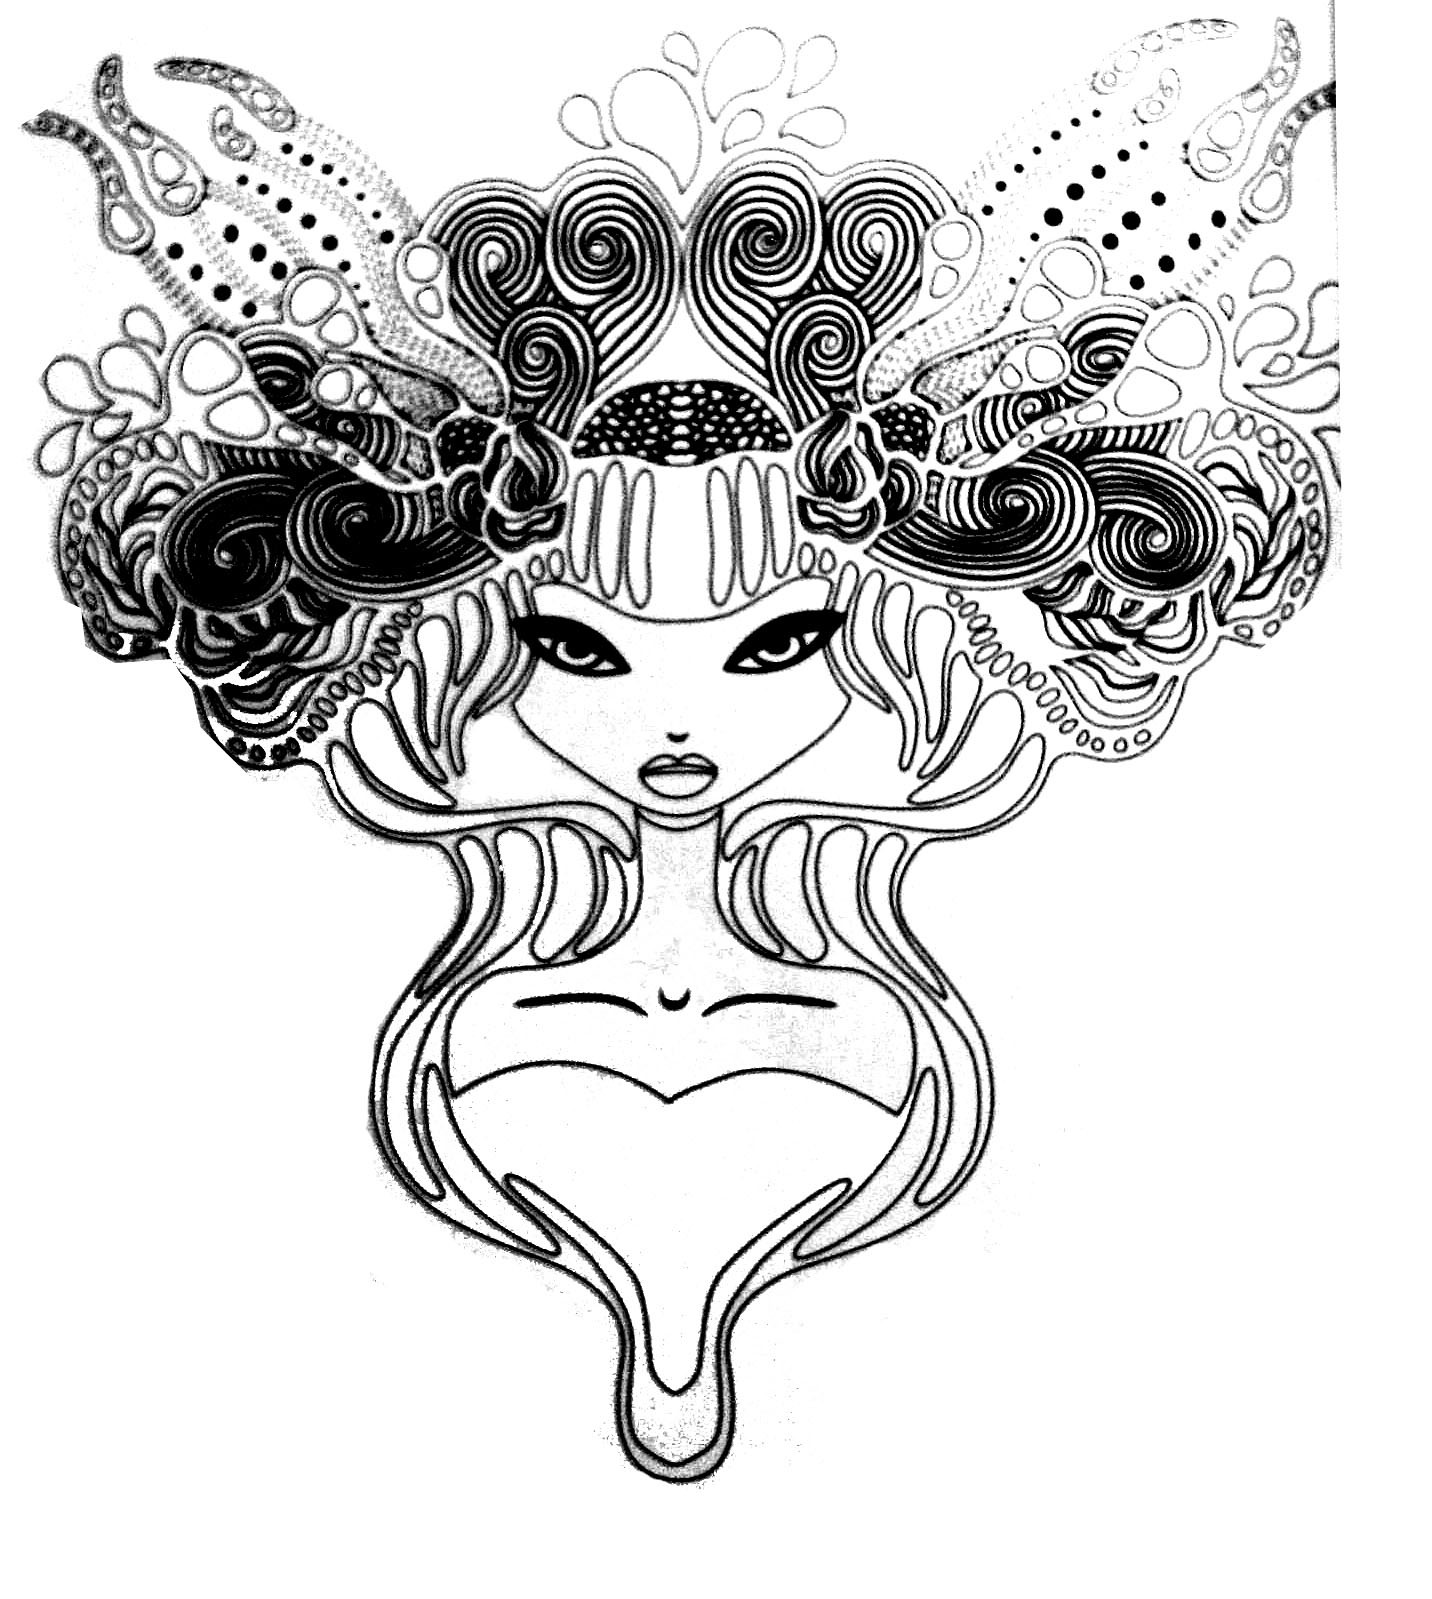 Tattoo Coloring Pages For Adults  Tattoo princess Tattoos Adult Coloring Pages Page 2